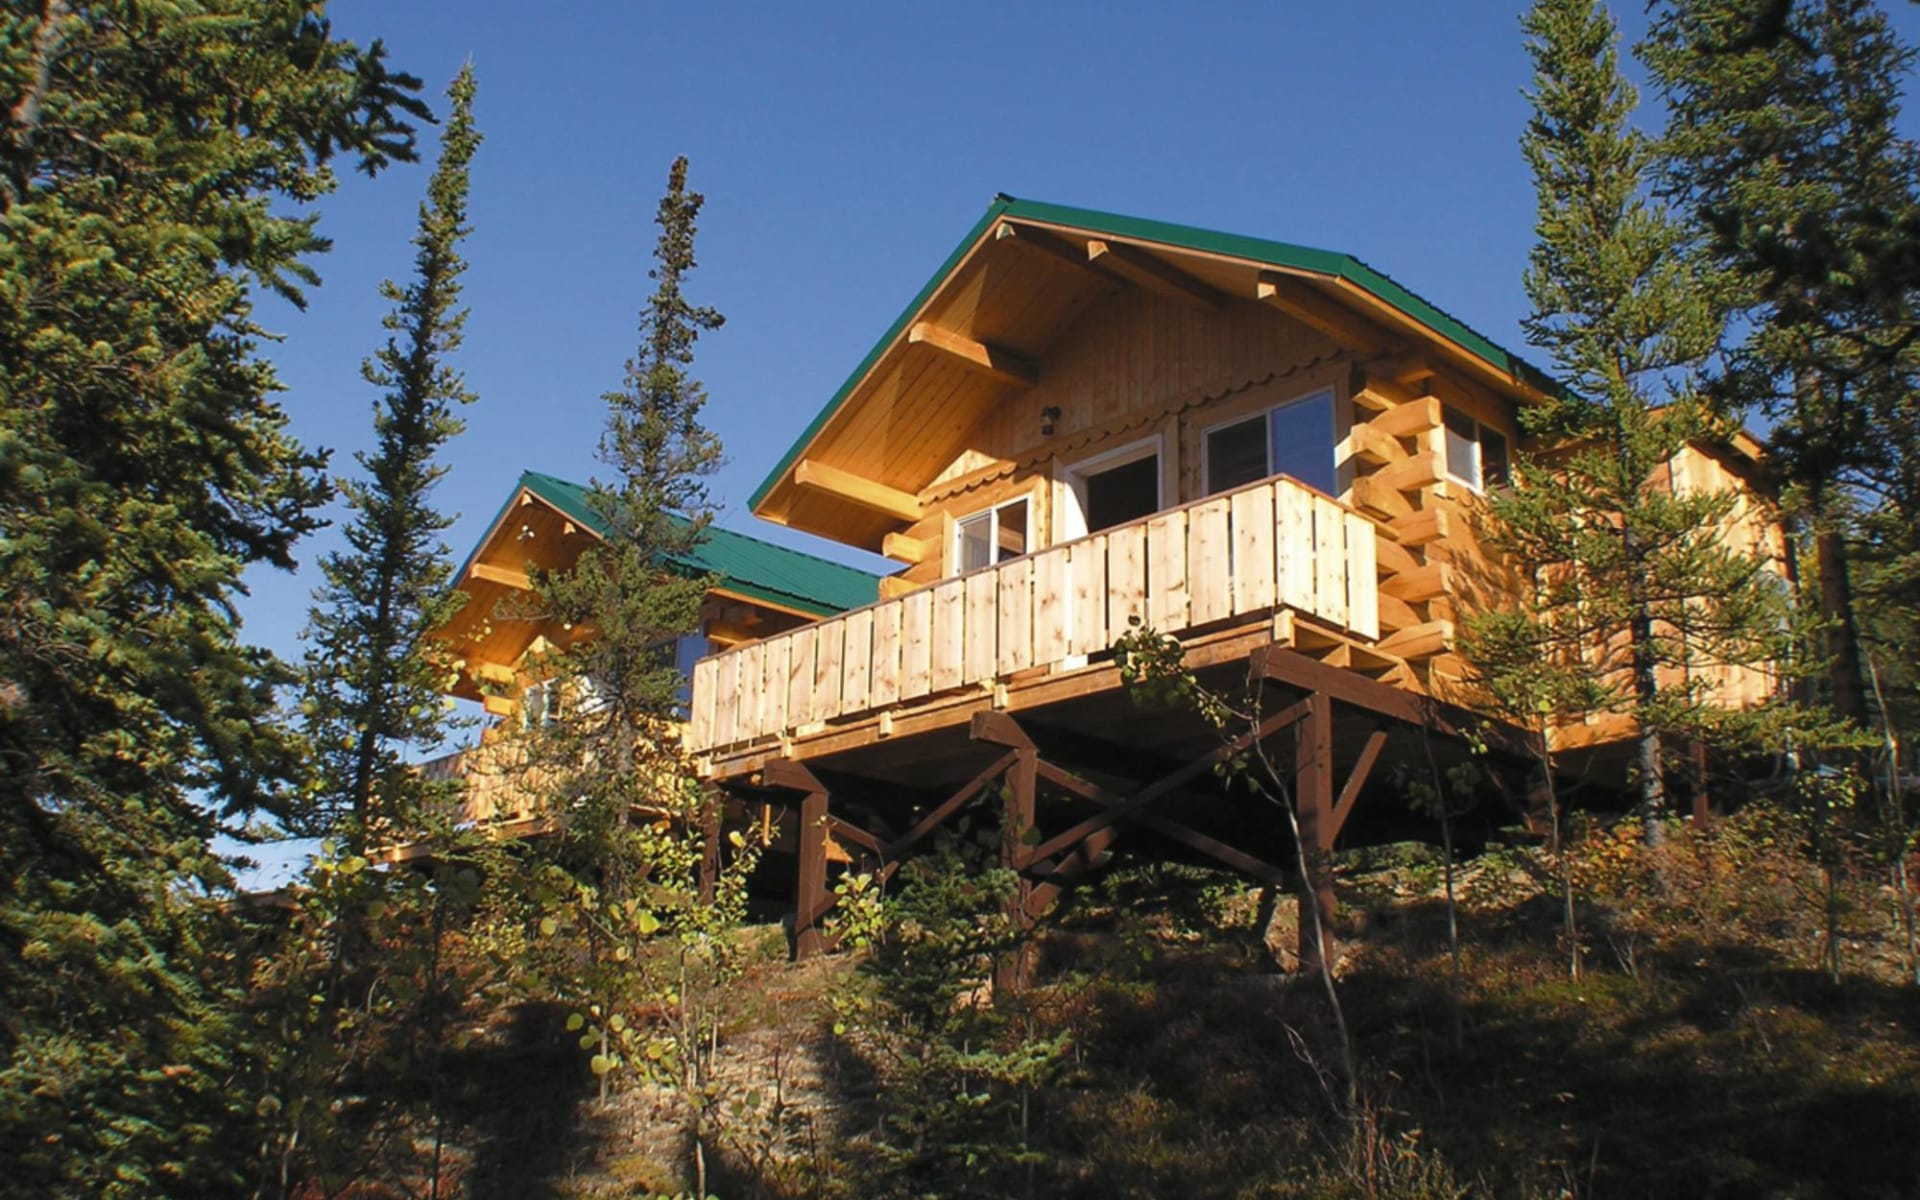 Denali Grizzly Bear Resort in Denali National Park: _ exterior Denali Grizzly Bear Resort - Aussenansicht Cabins